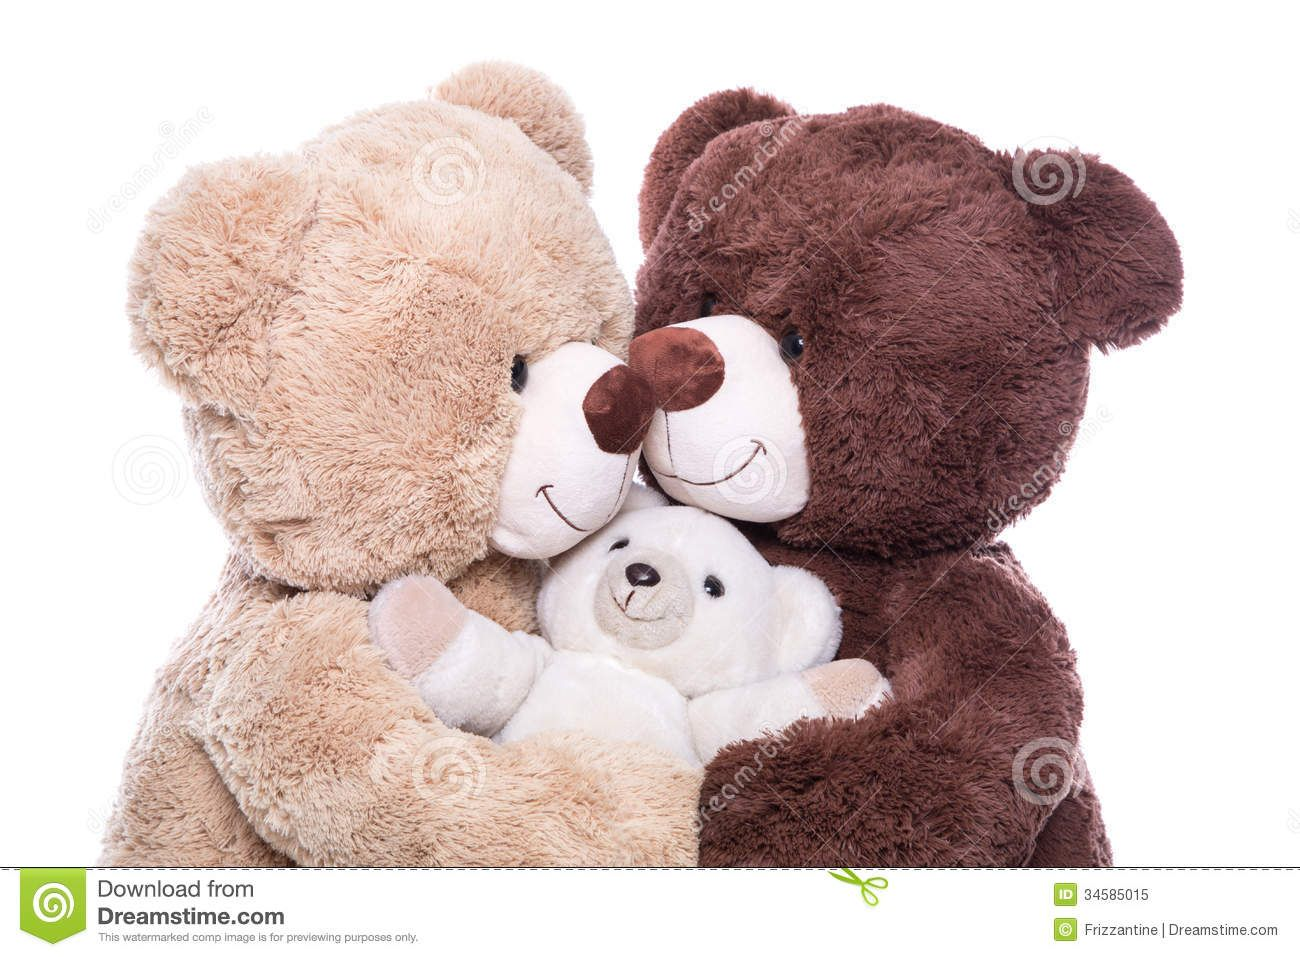 Happy Family - Mother, Father And Baby - Concept With Teddy Bear - Download From Over 50 Million High Quality Stock Photos, Images, Vectors. Sign up for FREE today. Image: 34585015